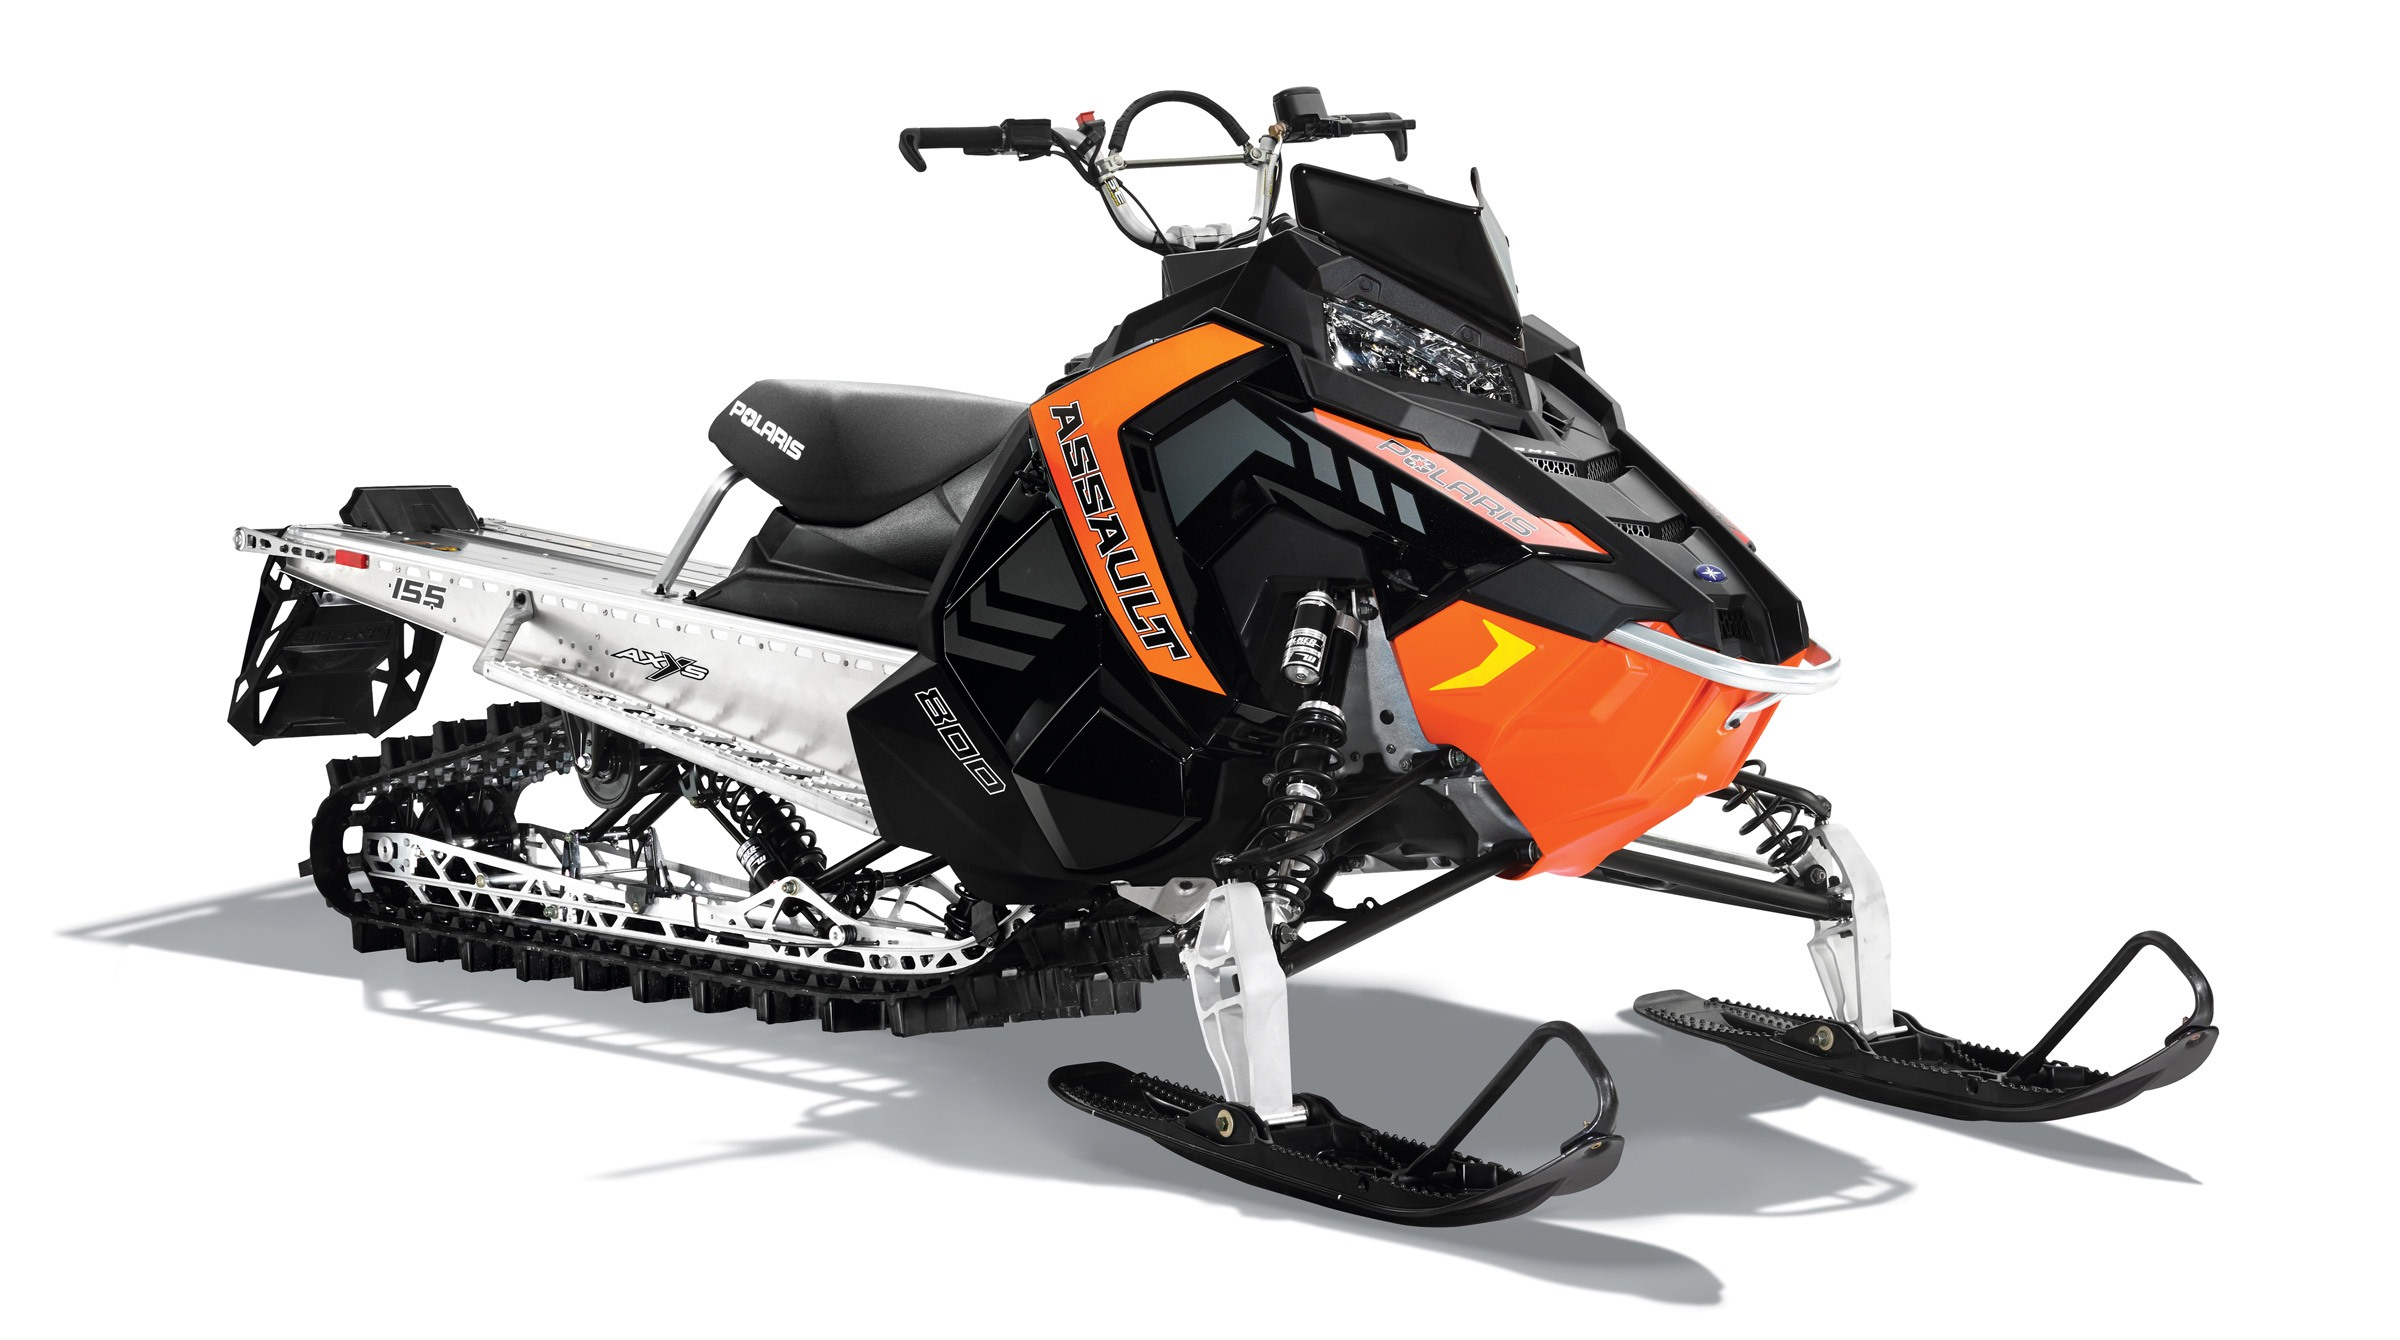 2016 Polaris 800 RMK Assault 155 Powder in Lake Mills, Iowa - Photo 1